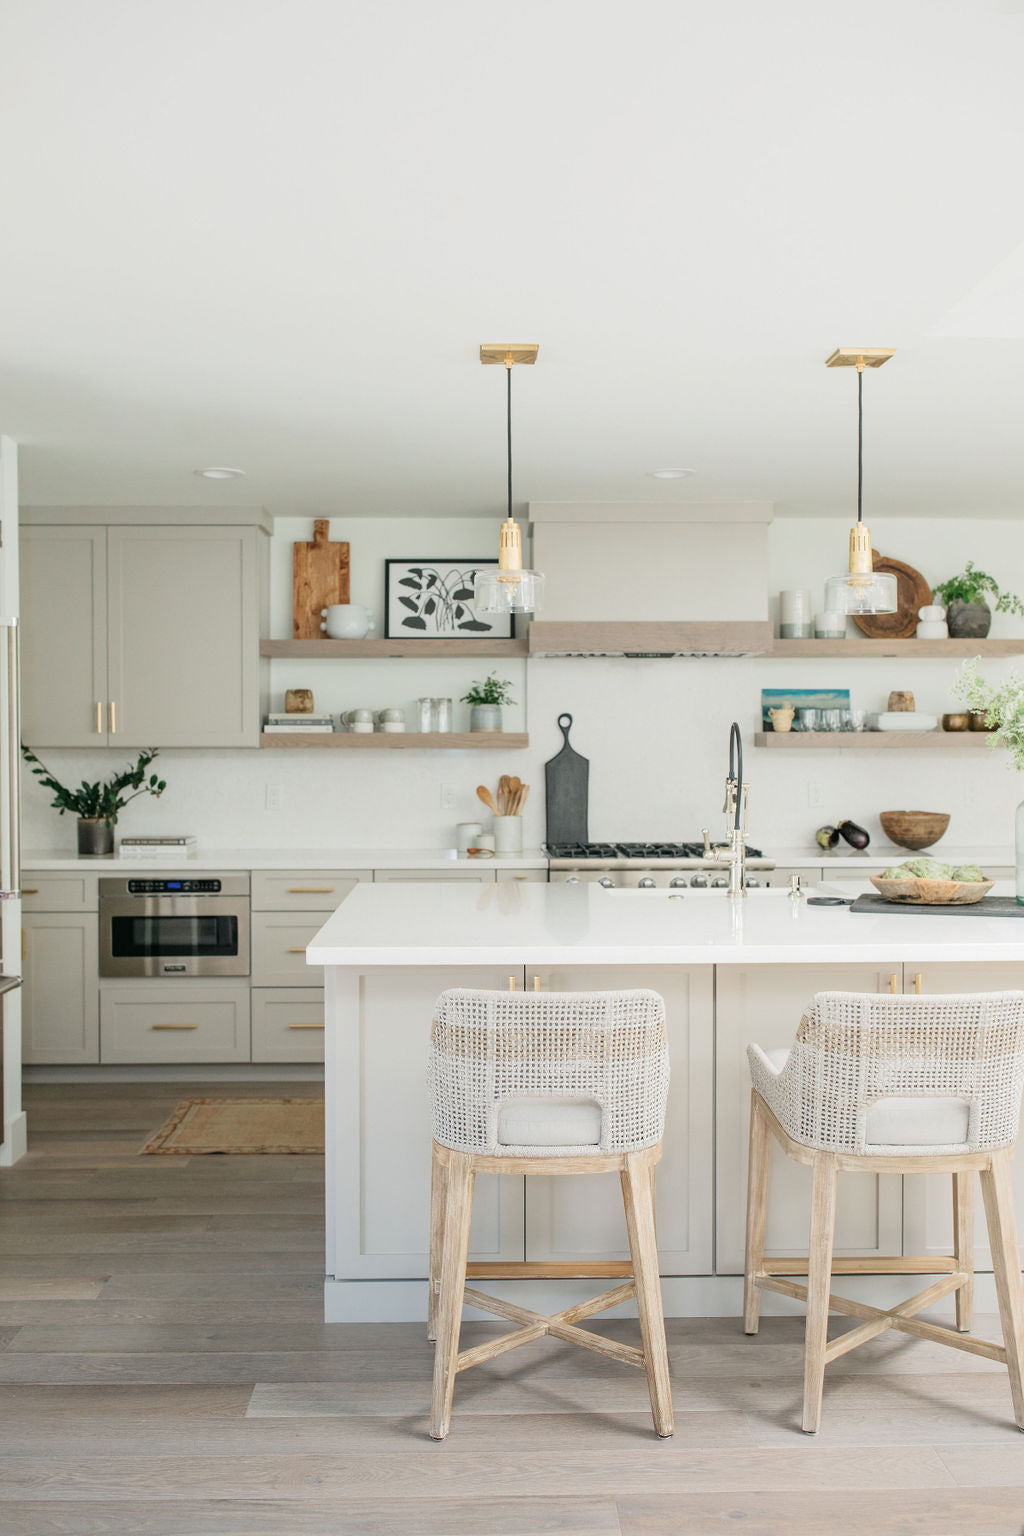 greige design shop + interiors alexandria project kitchen grey cabinets tapestry stools open shelves